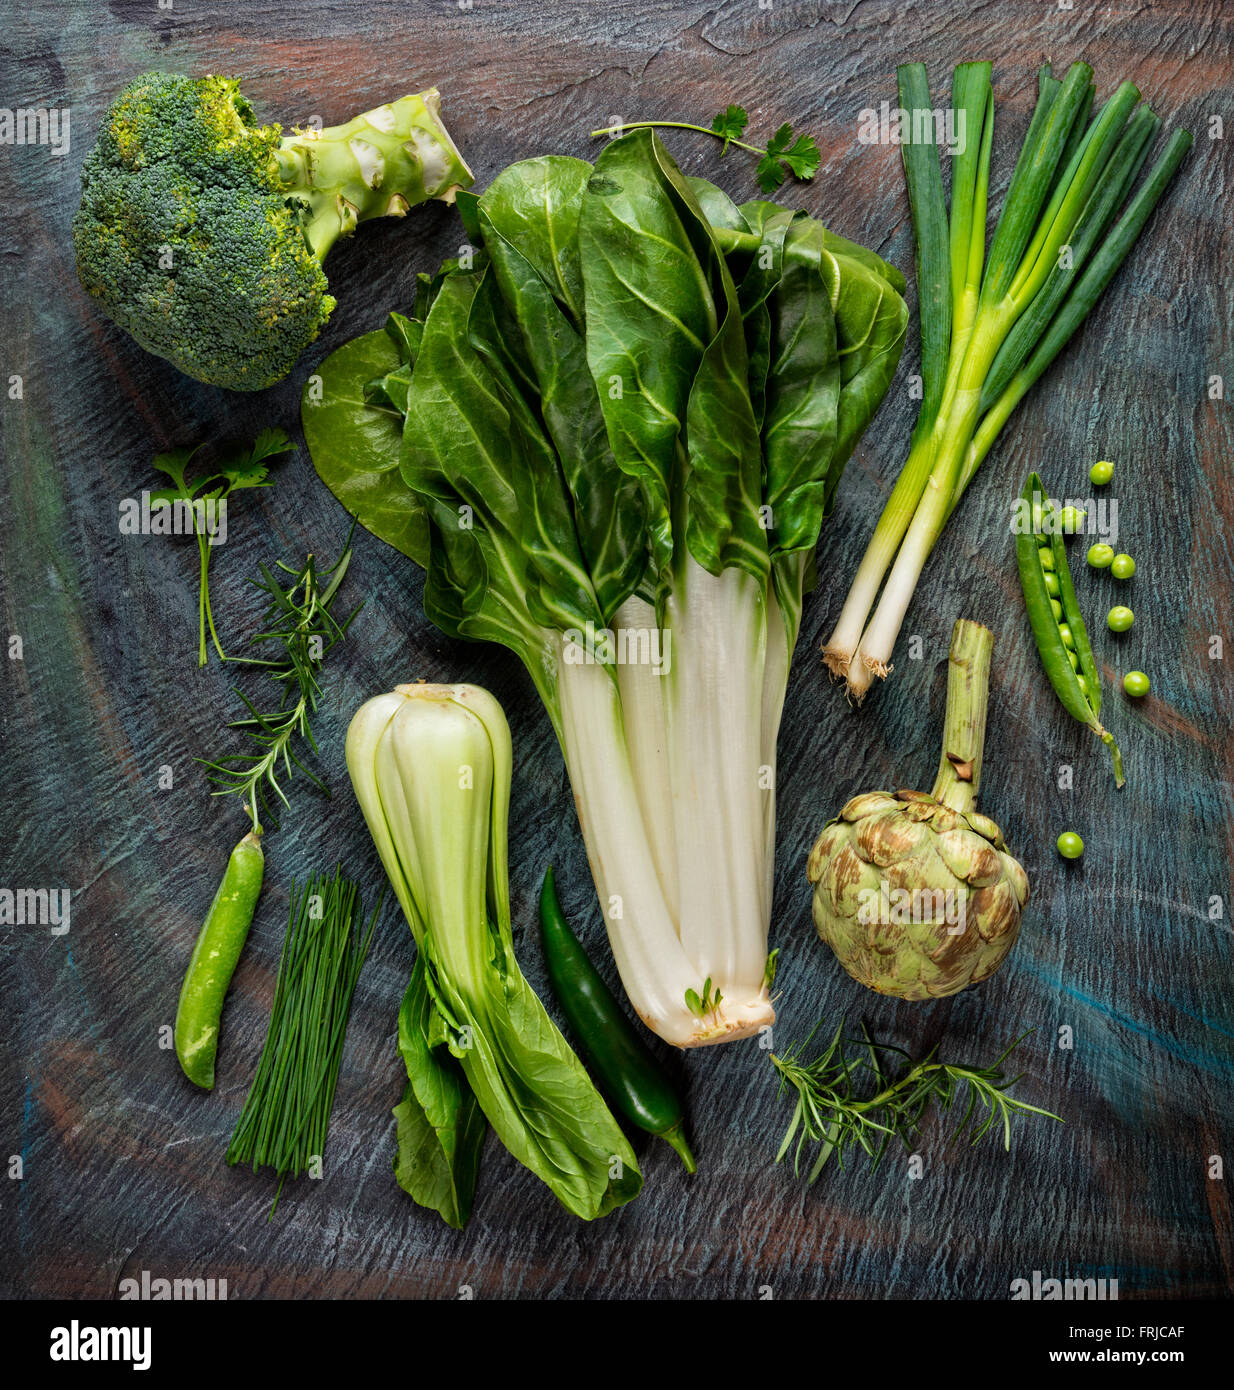 Collection of fresh green vegetables on black stone - Stock Image